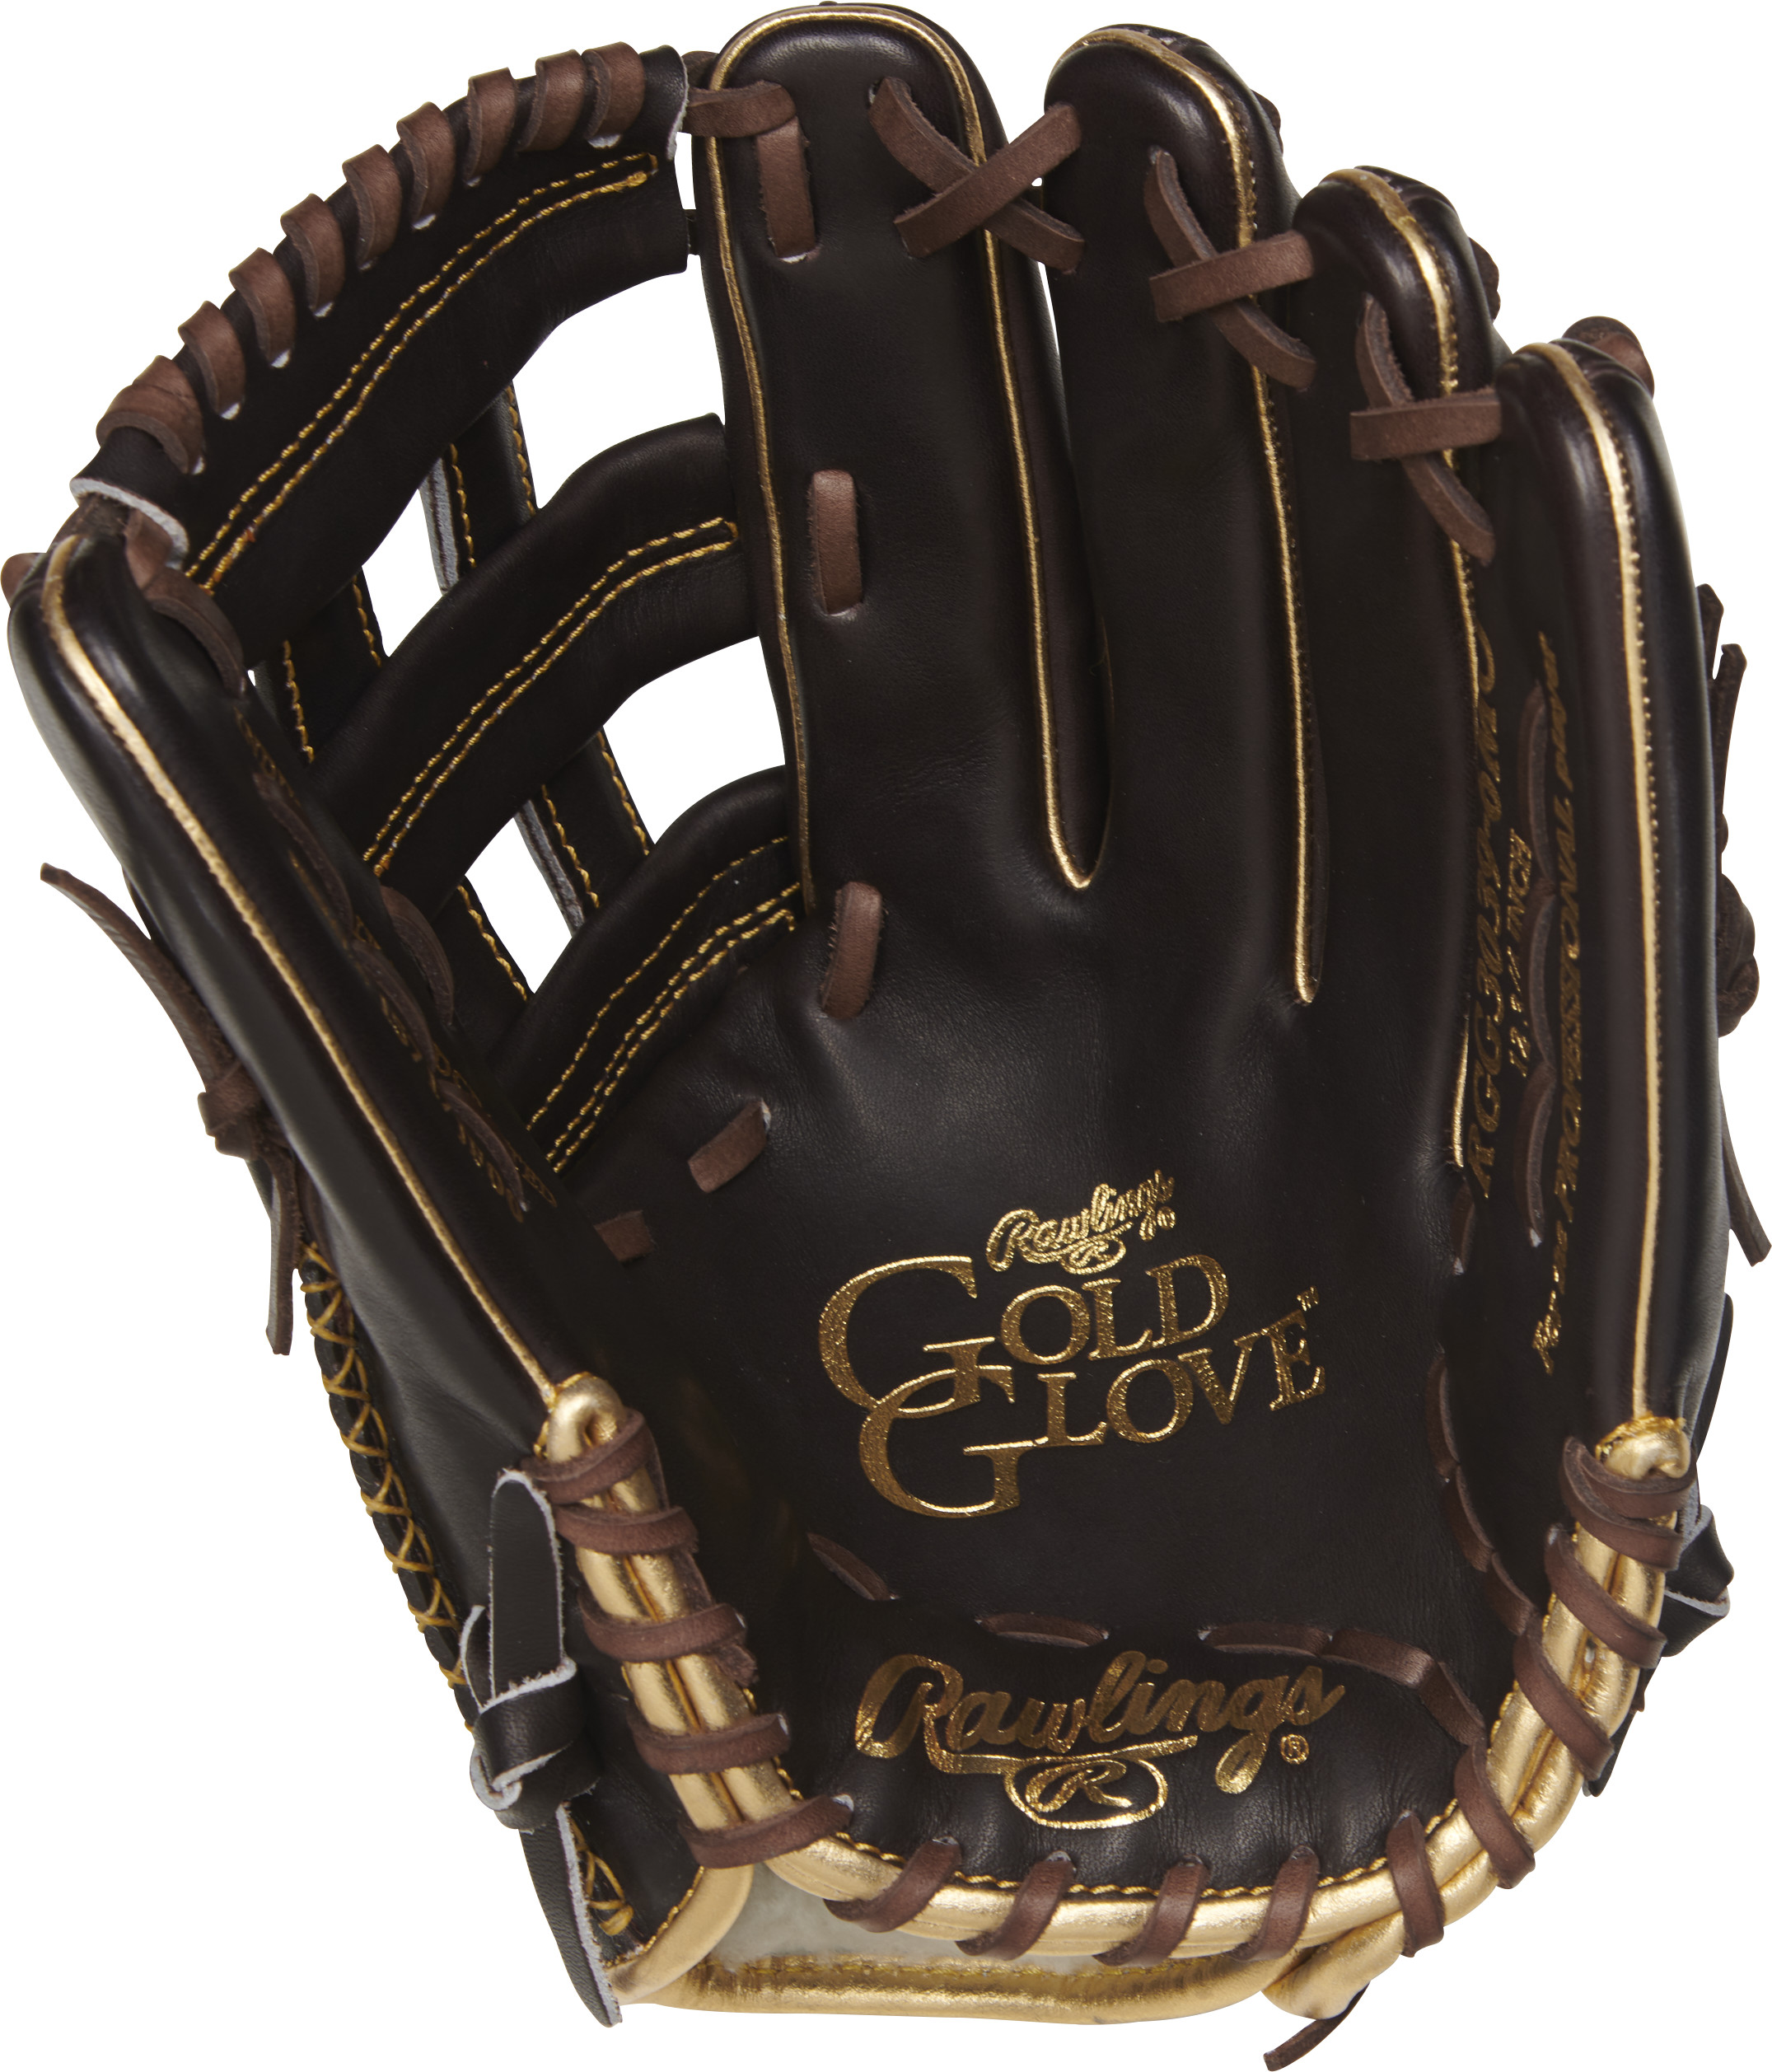 http://www.bestbatdeals.com/images/gloves/rawlings/RGG3039-6MO-1.jpg